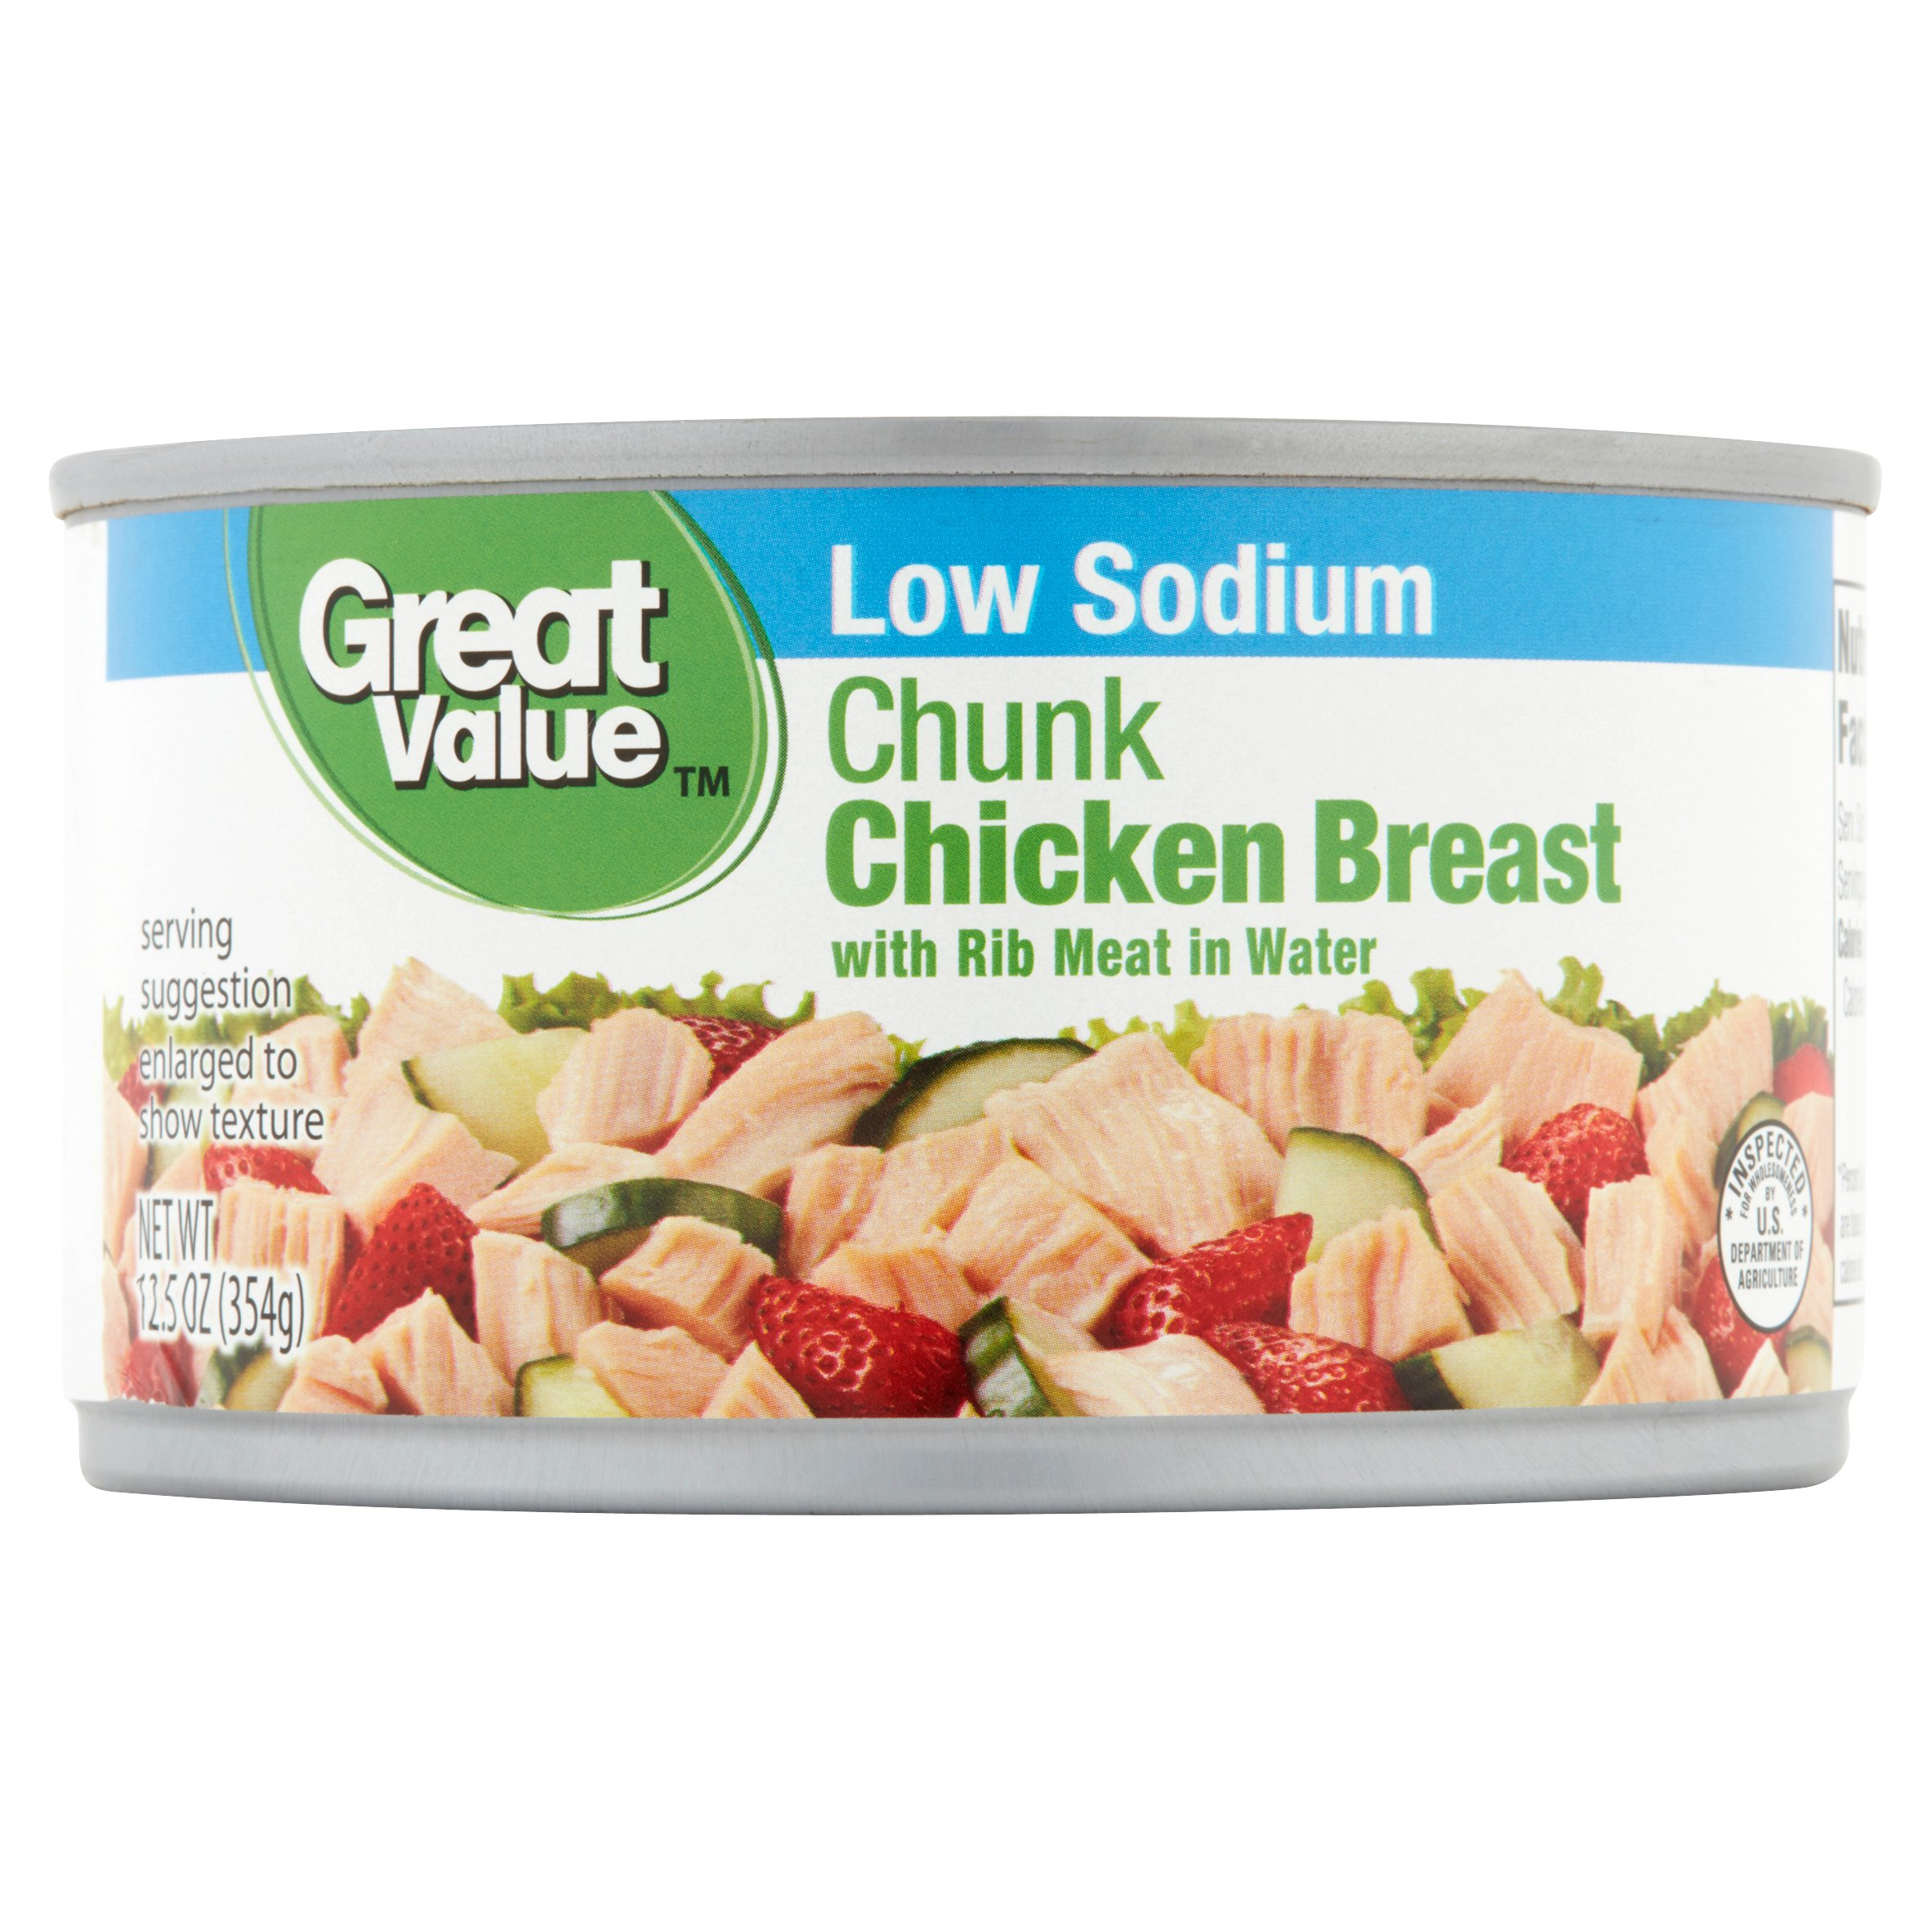 (3 Pack) Great Value Low Sodium Chunk Chicken Breast, 12.5 oz